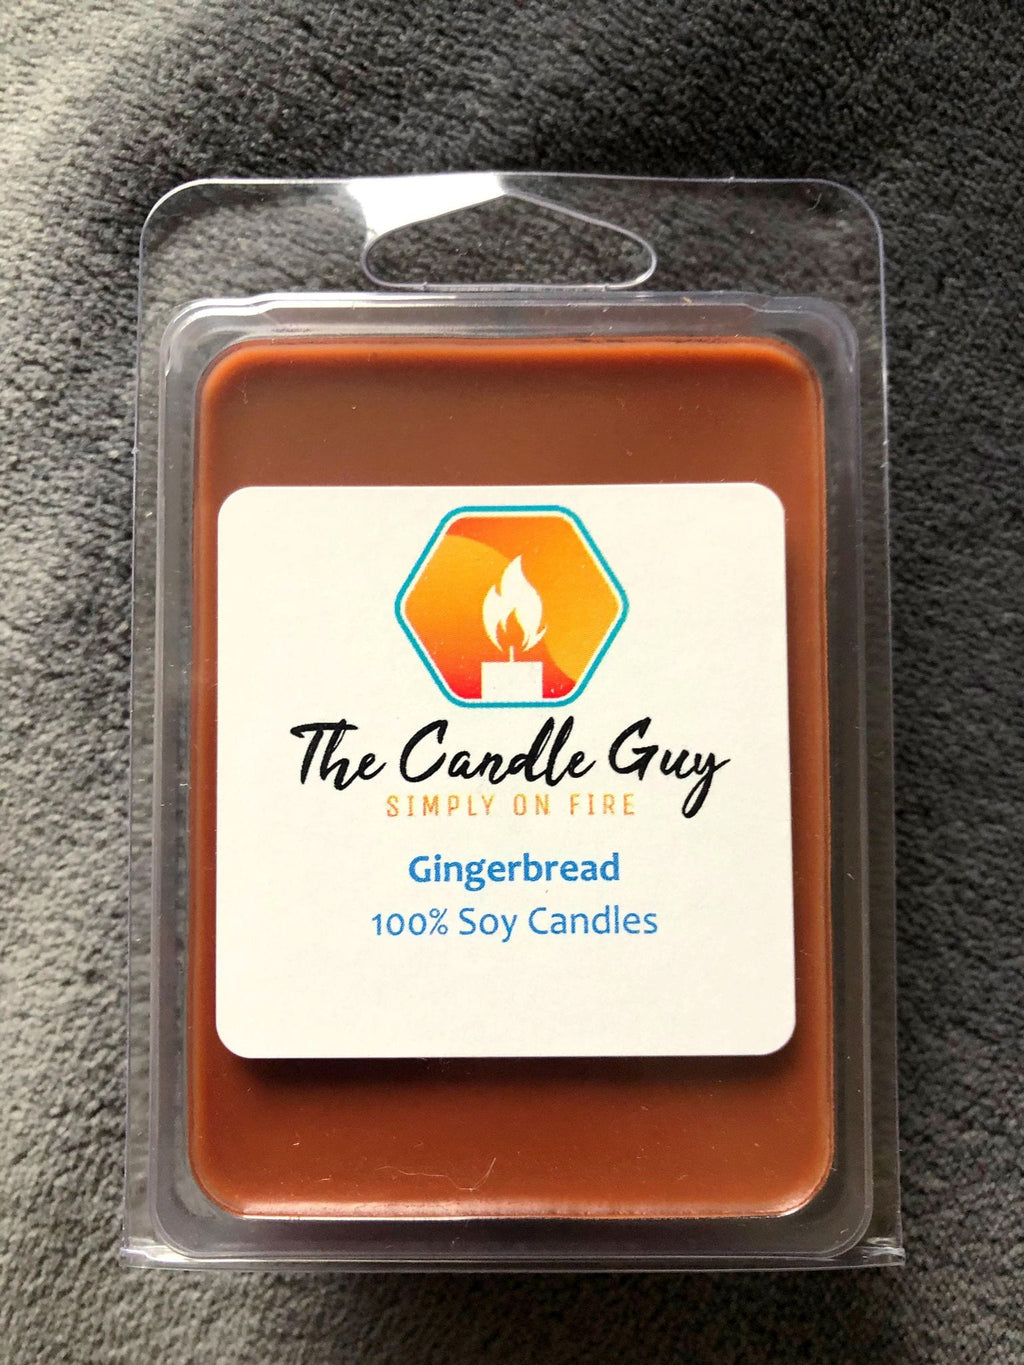 Gingerbread Wax Melt - The Candle Guy LLC